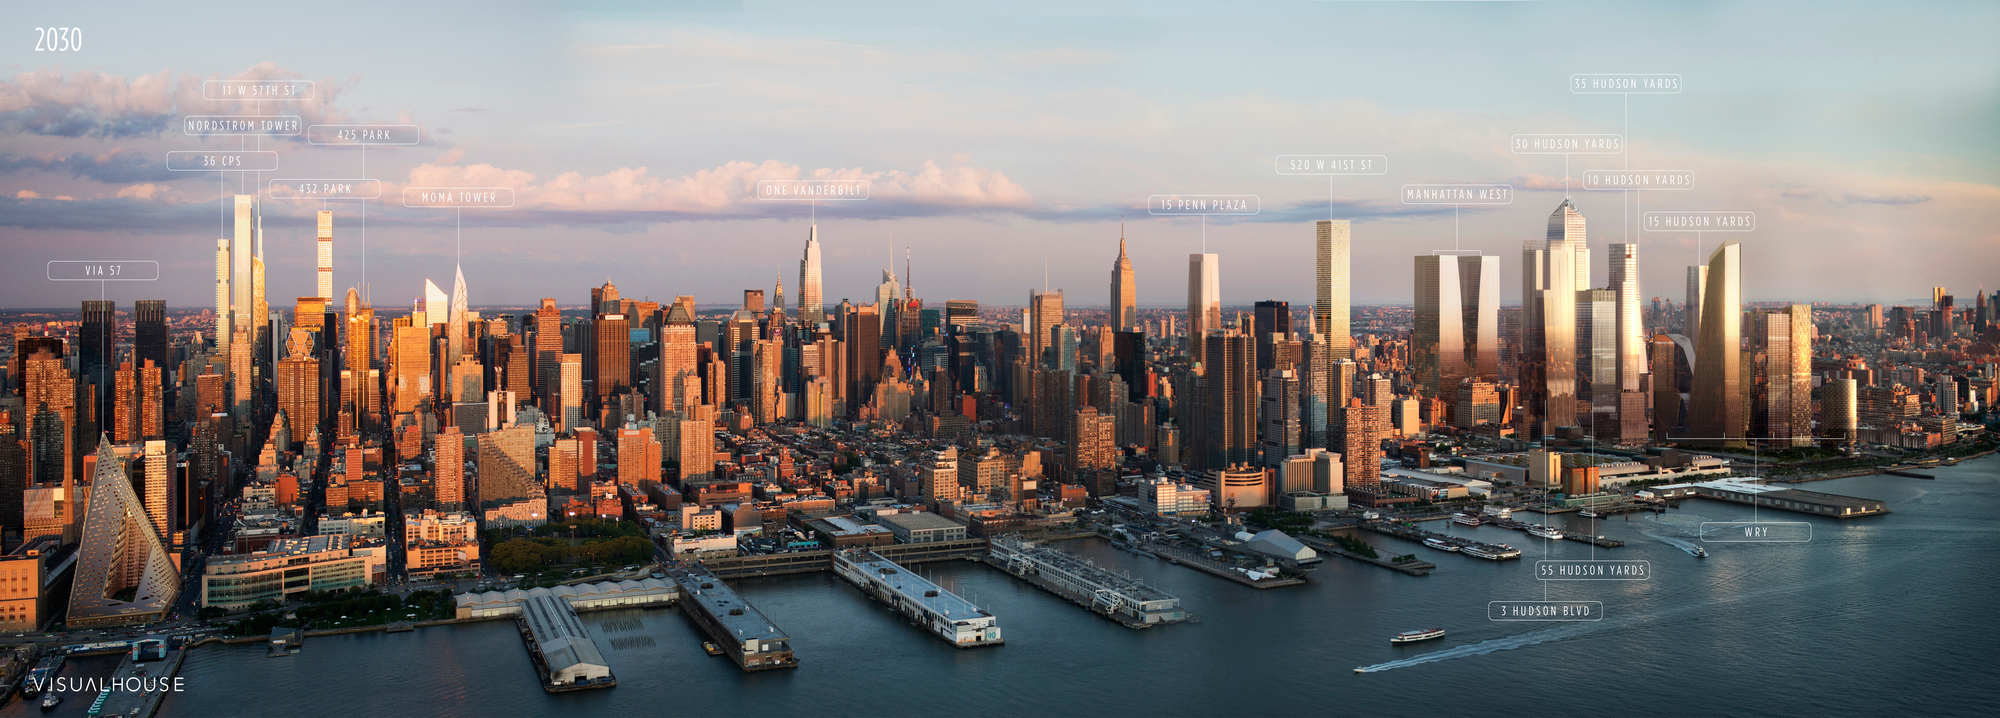 Student Hacked School Broke Data Protection Act further 576 besides Q19pgyzsfHd additionally New York 2030 This Annotated Visualization Shows Us The Manhattan Of The Future further References. on medical office education